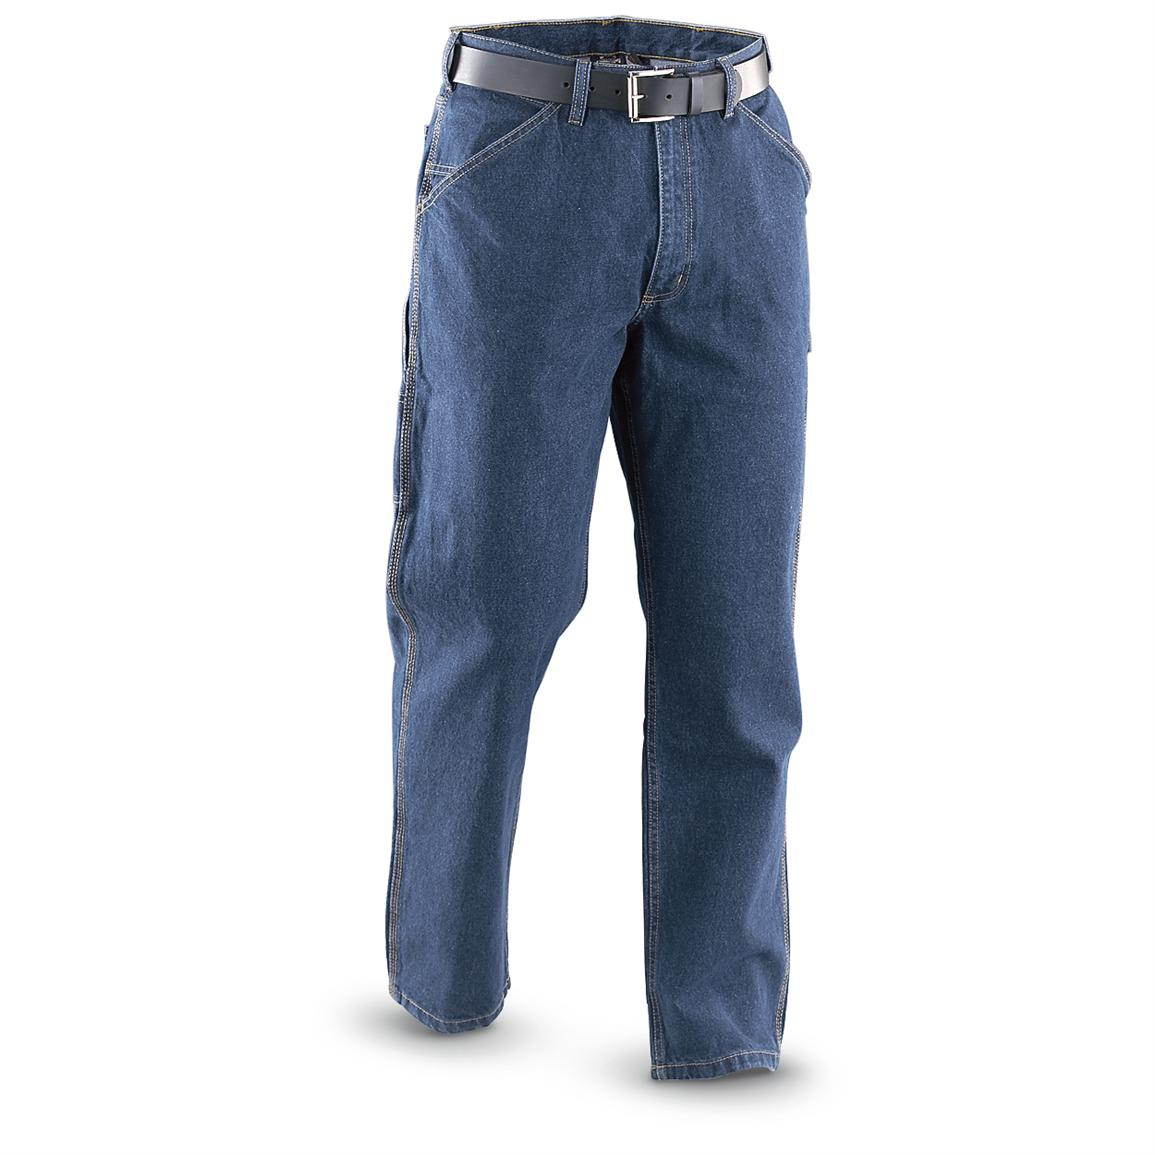 Guide Gear® 8-pocket Carpenter Jeans, Stonewash; 8 pockets and a hammer loop